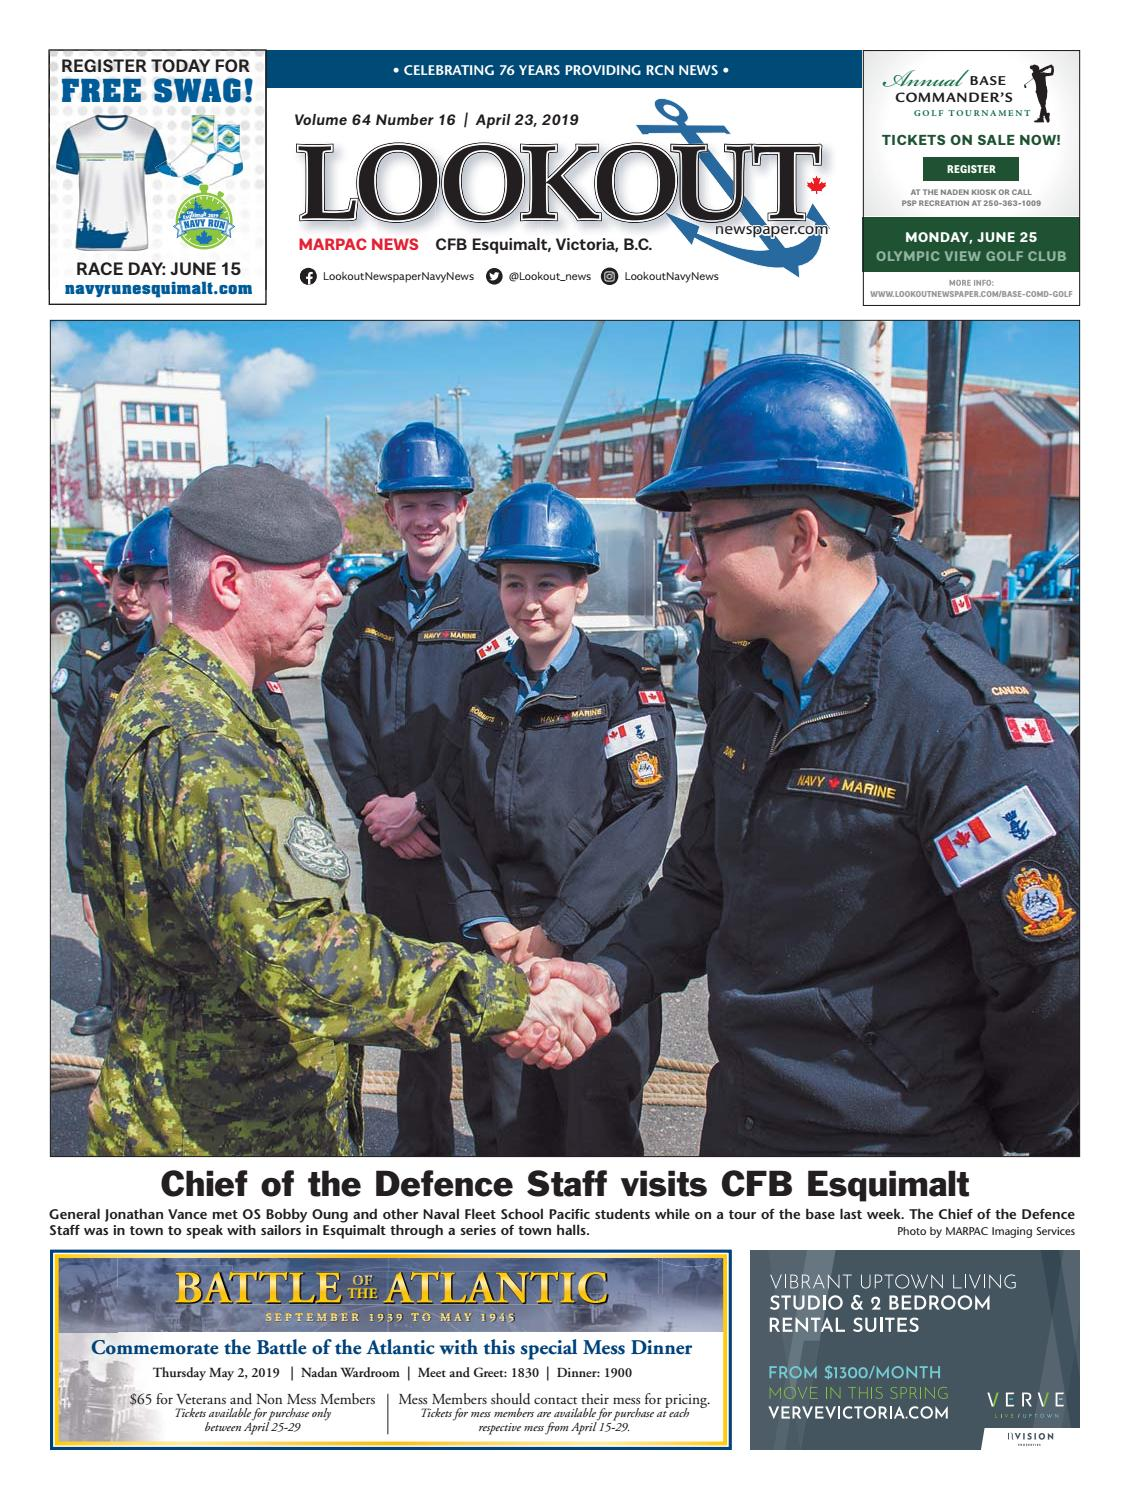 Lookout Newspaper, Issue 16, April 22, 2019 by Lookout